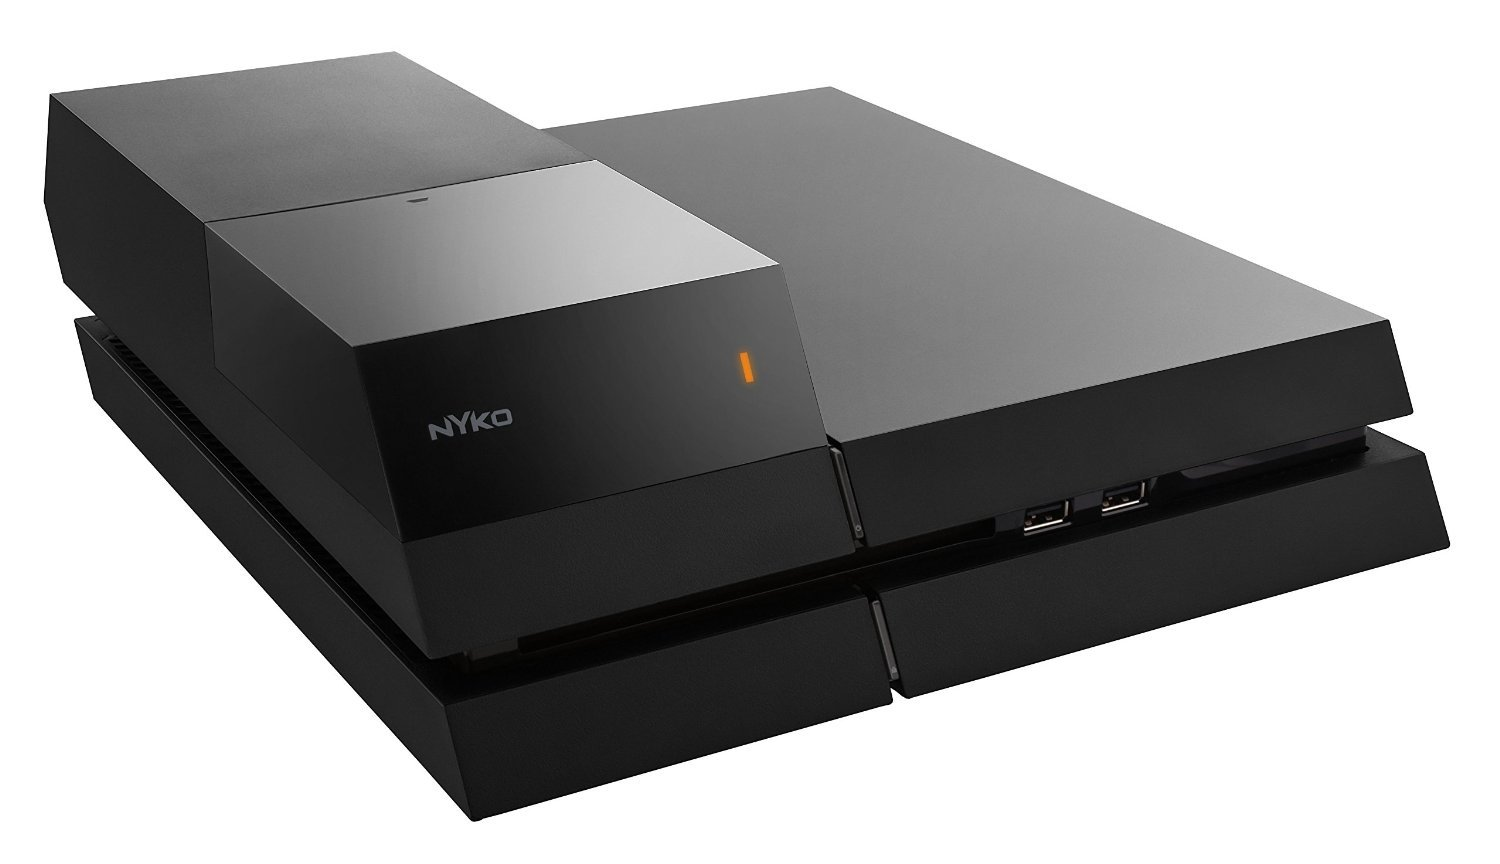 nyko data bank ps4 2tb hard drive